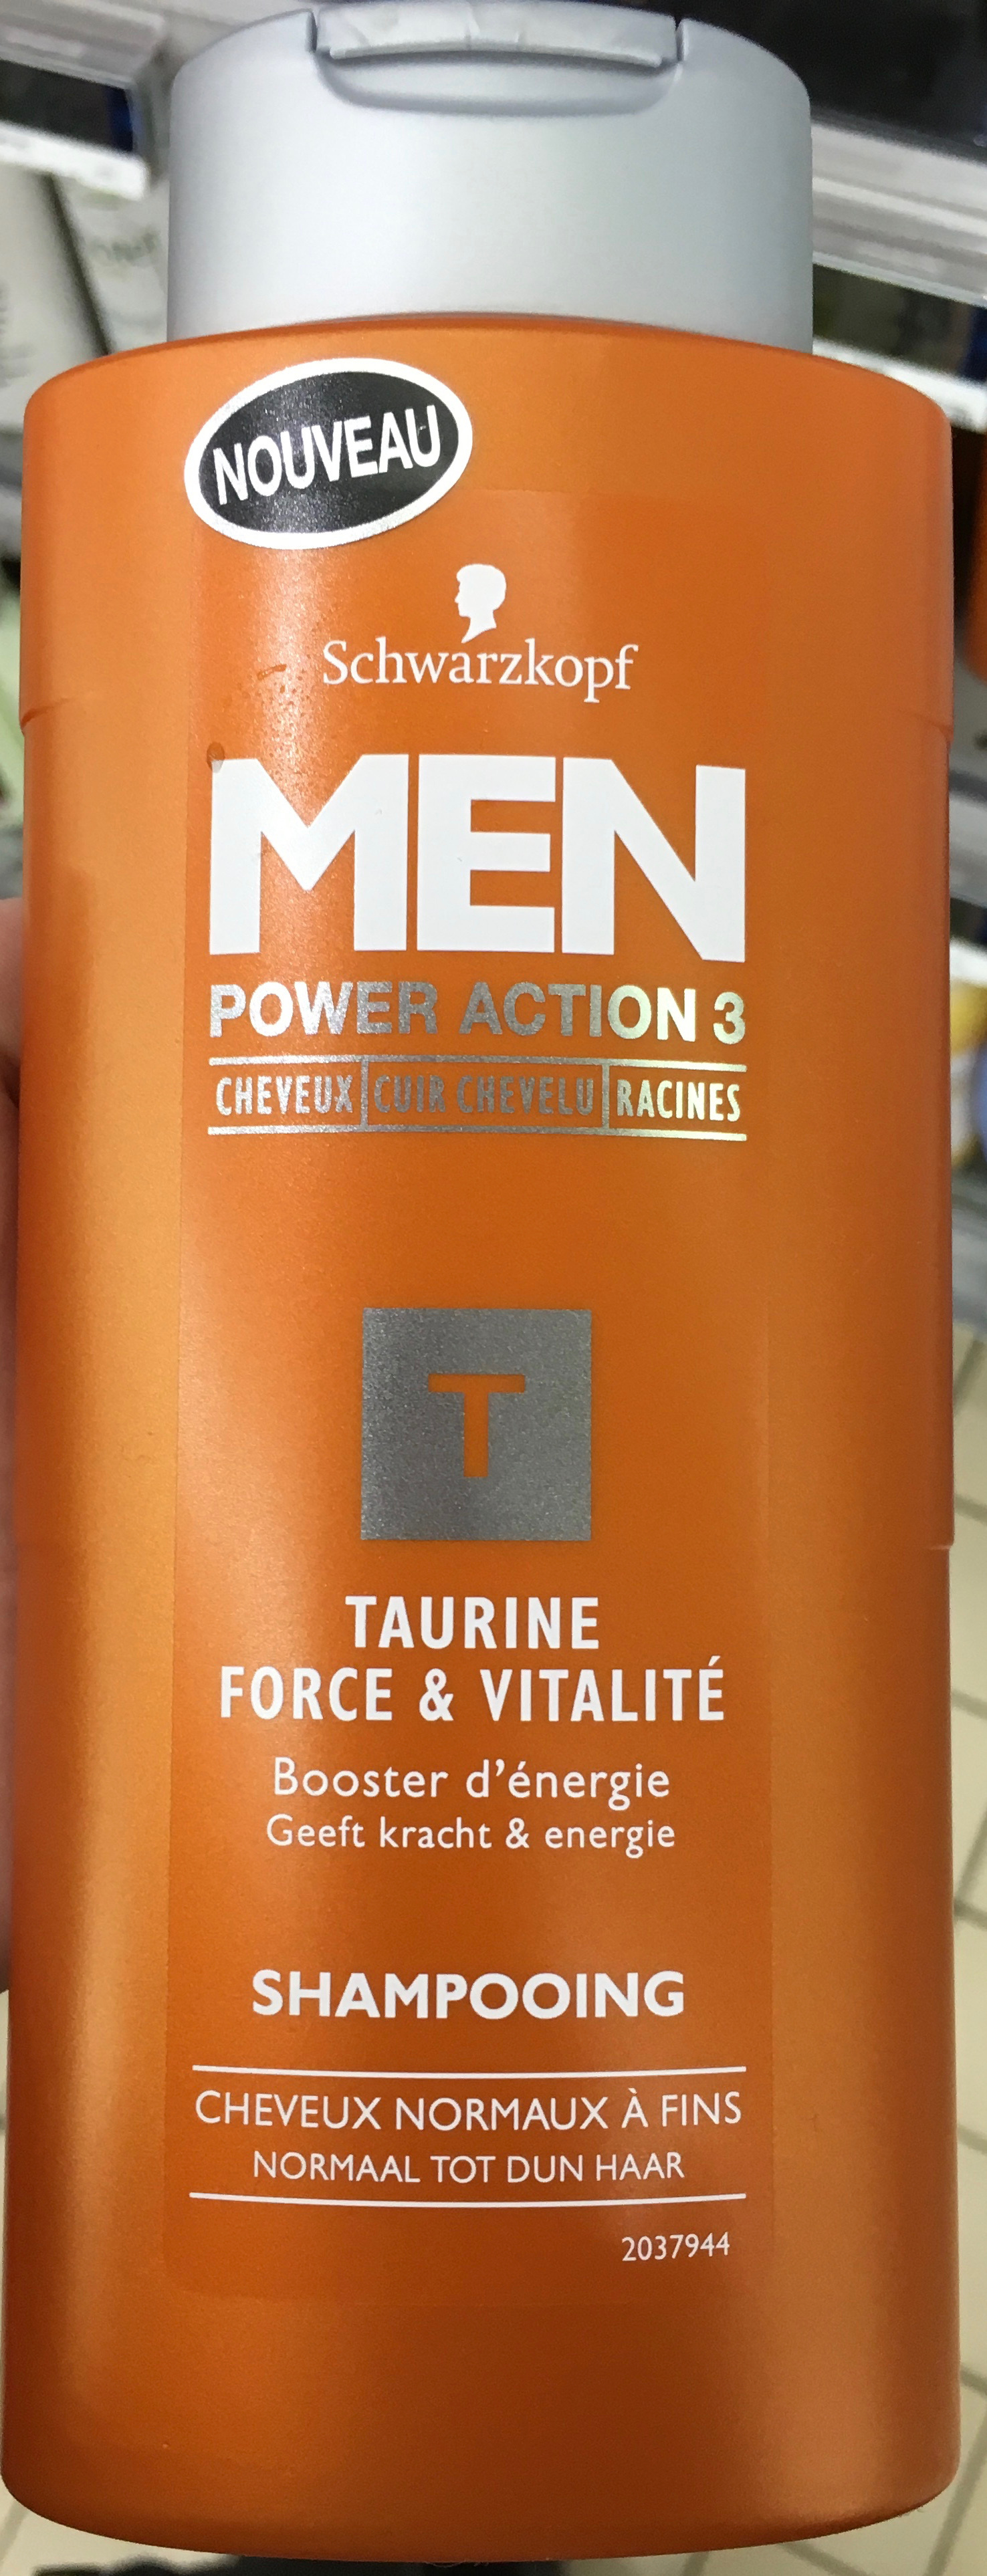 Men Power Action 3 Taurine Force & Vitalité Shampoing - Product - fr